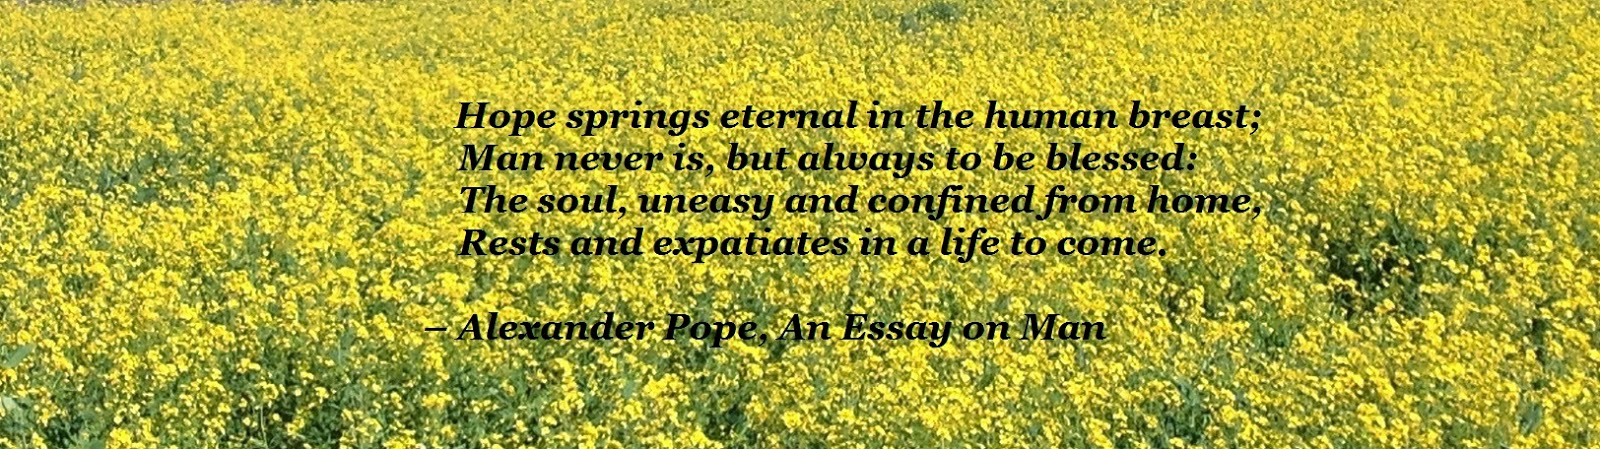 """pope essay on man hope springs eternal An essay on man alexander pope (1688 """"hope springs eternal in the human breast: man never is, but always to be blest"""" (summary by martin geeson."""